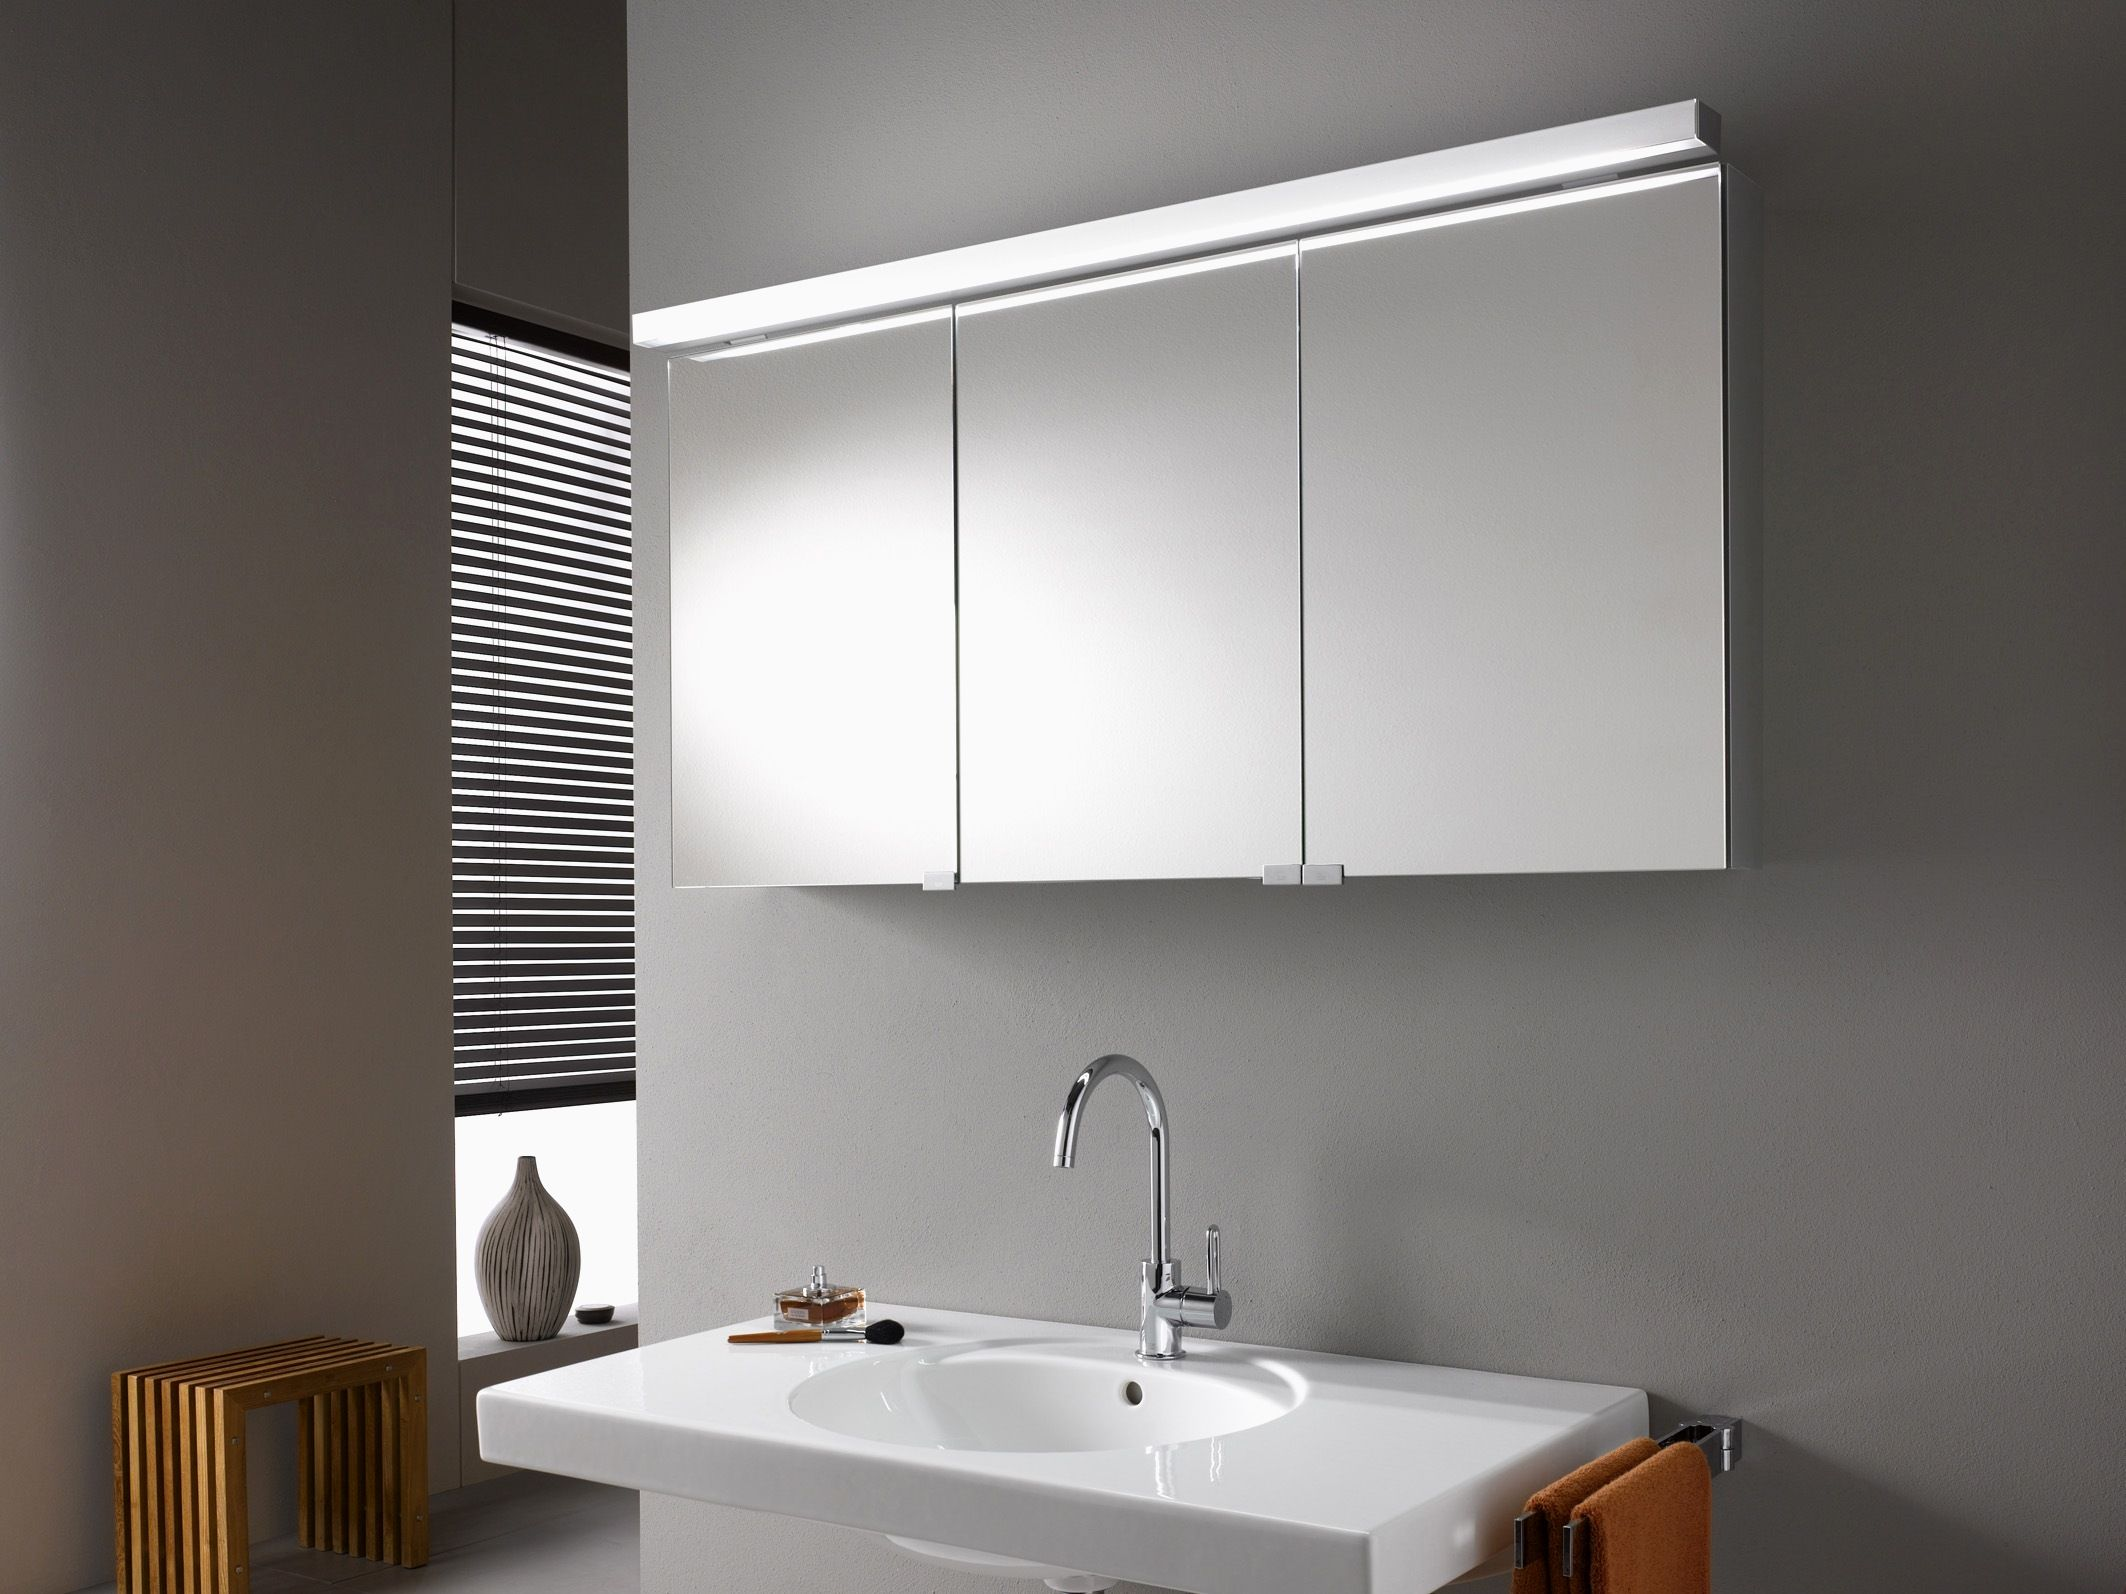 21 Inspirational Long Mirrored Bathroom Cabinets Jose Style And